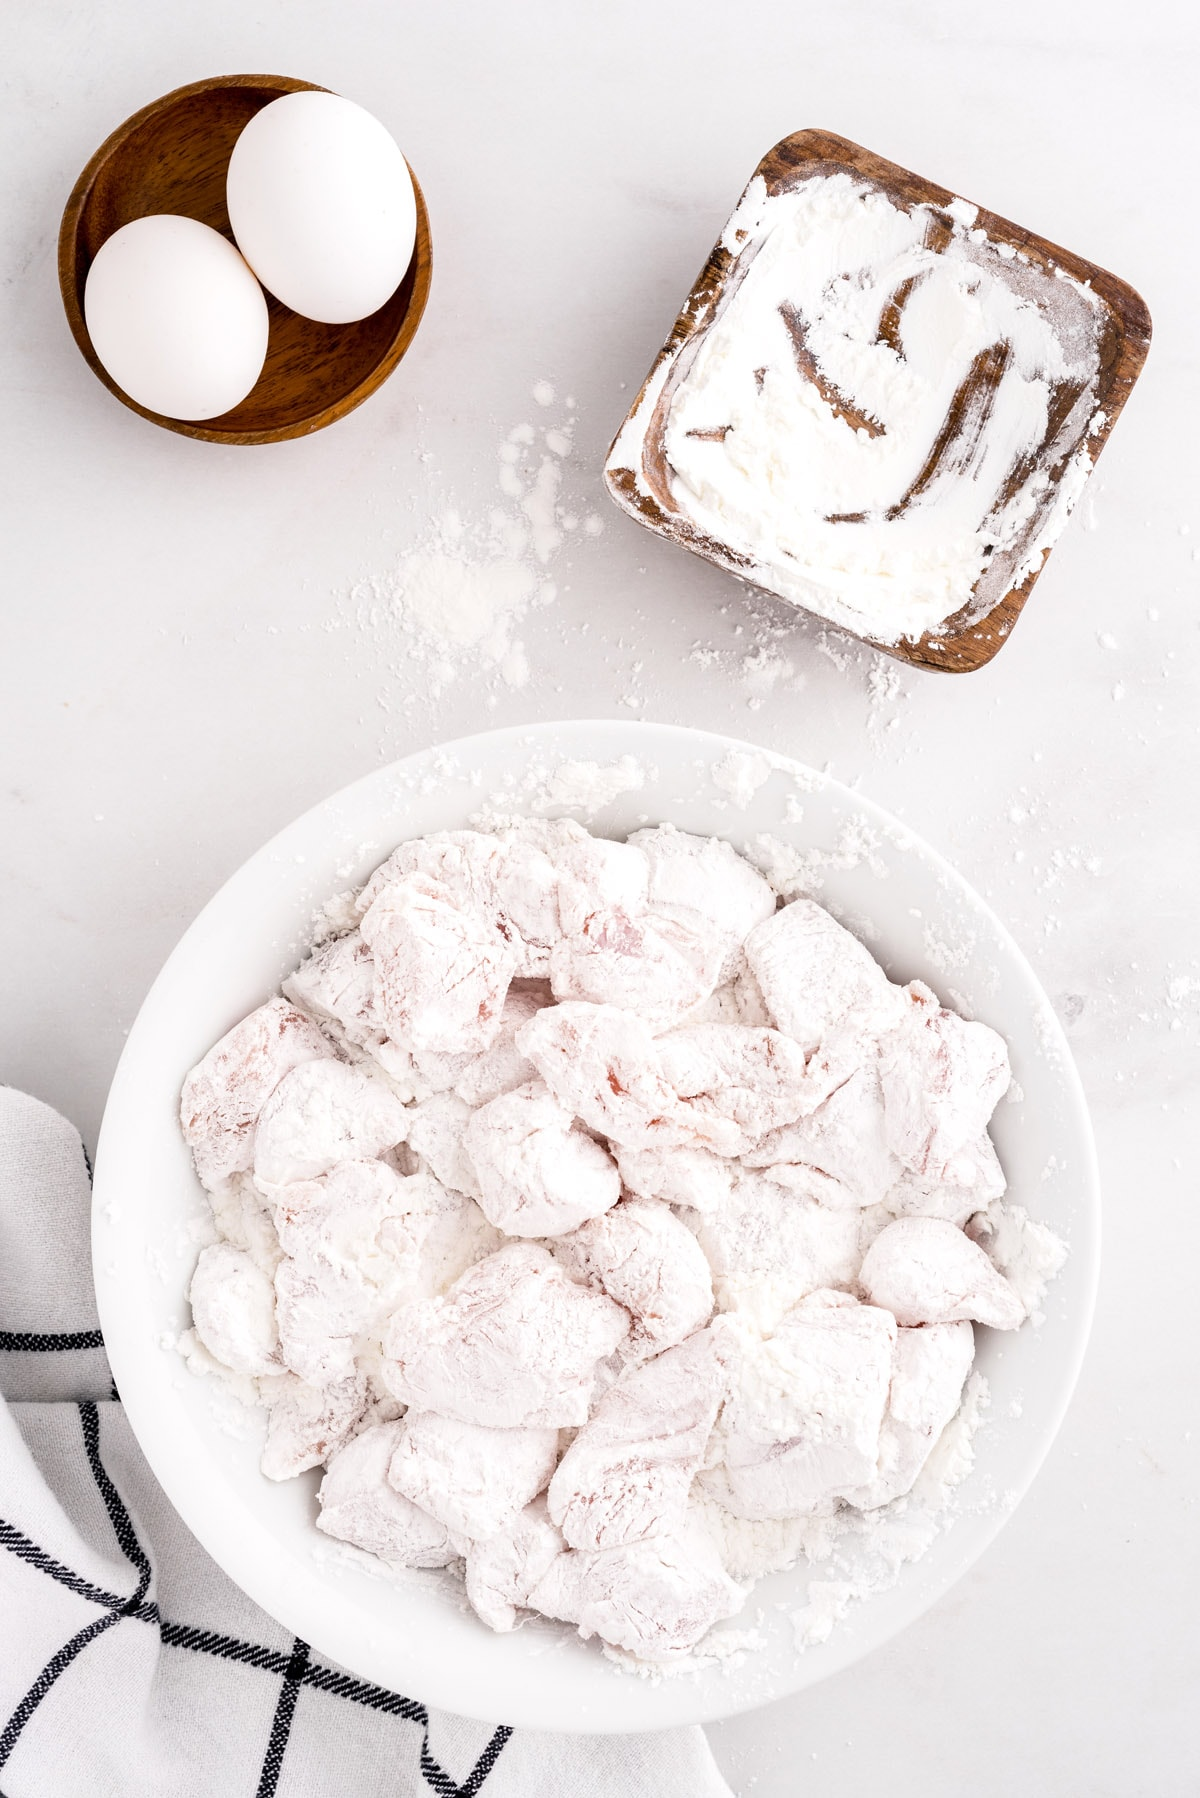 Sprinkle your cut chicken with the cornstarch and toss them to evenly coat all sides of the chicken